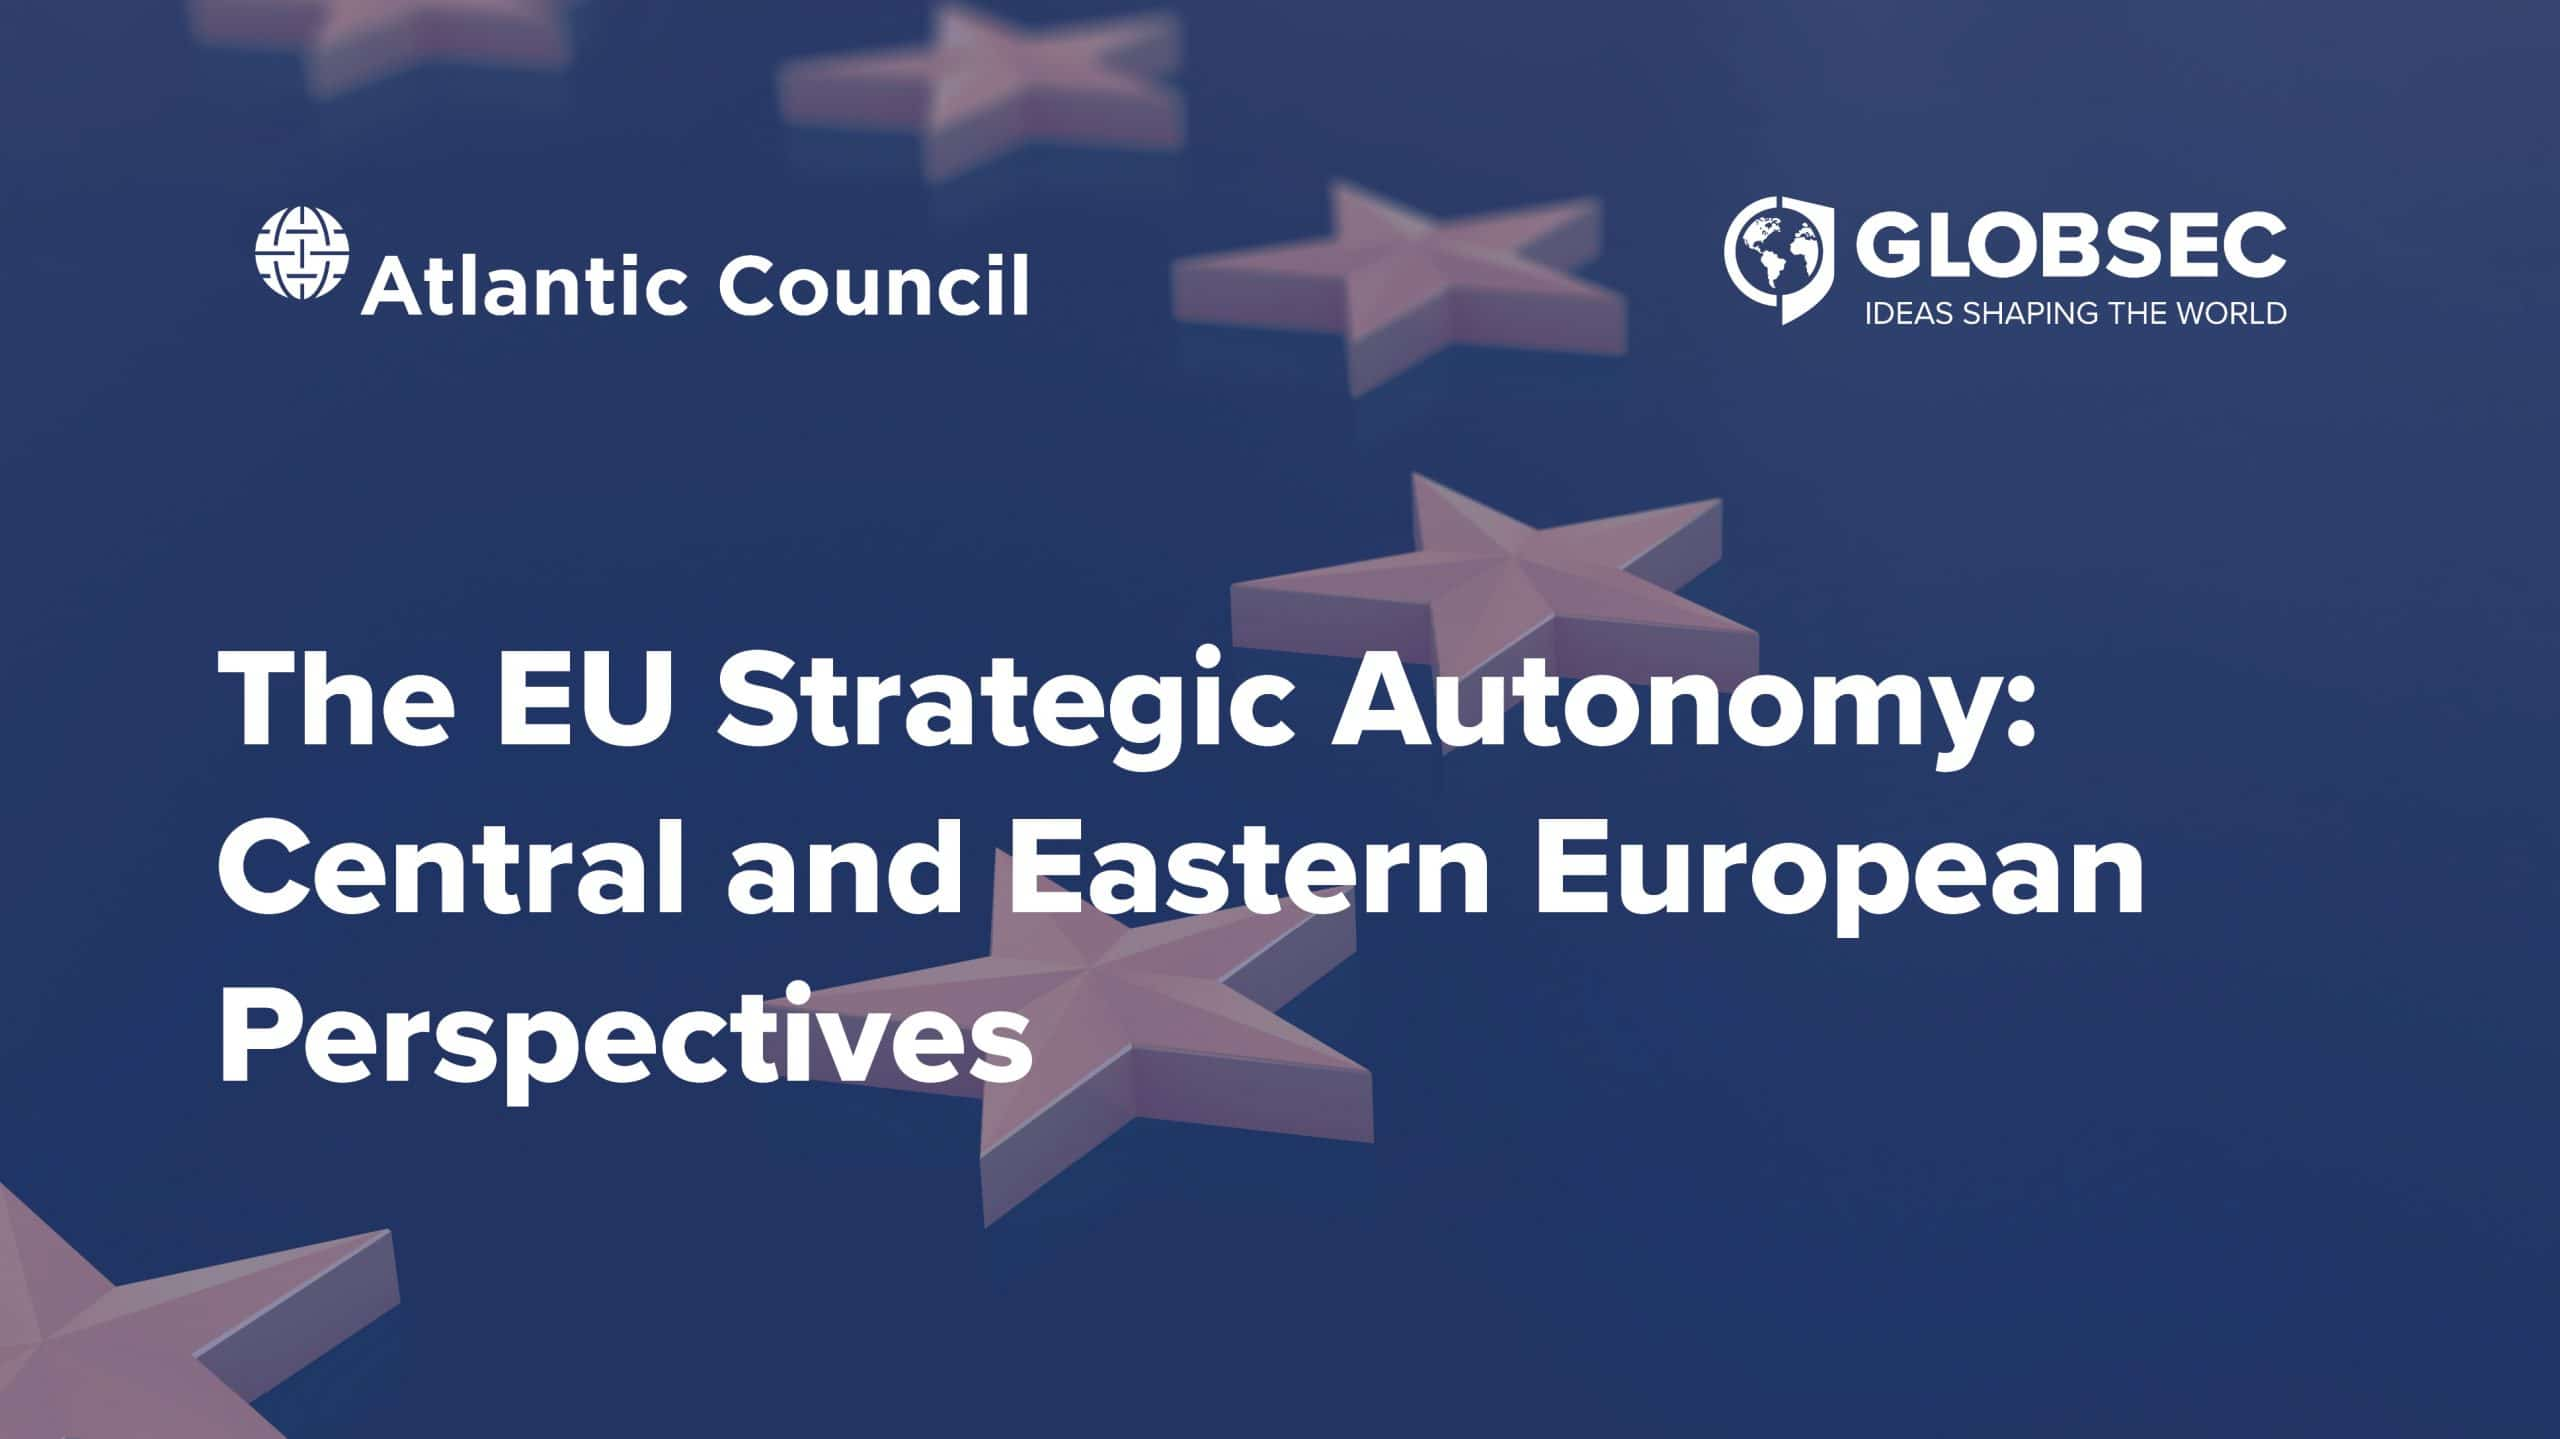 The EU Strategic Autonomy: Central and Eastern European Perspectives